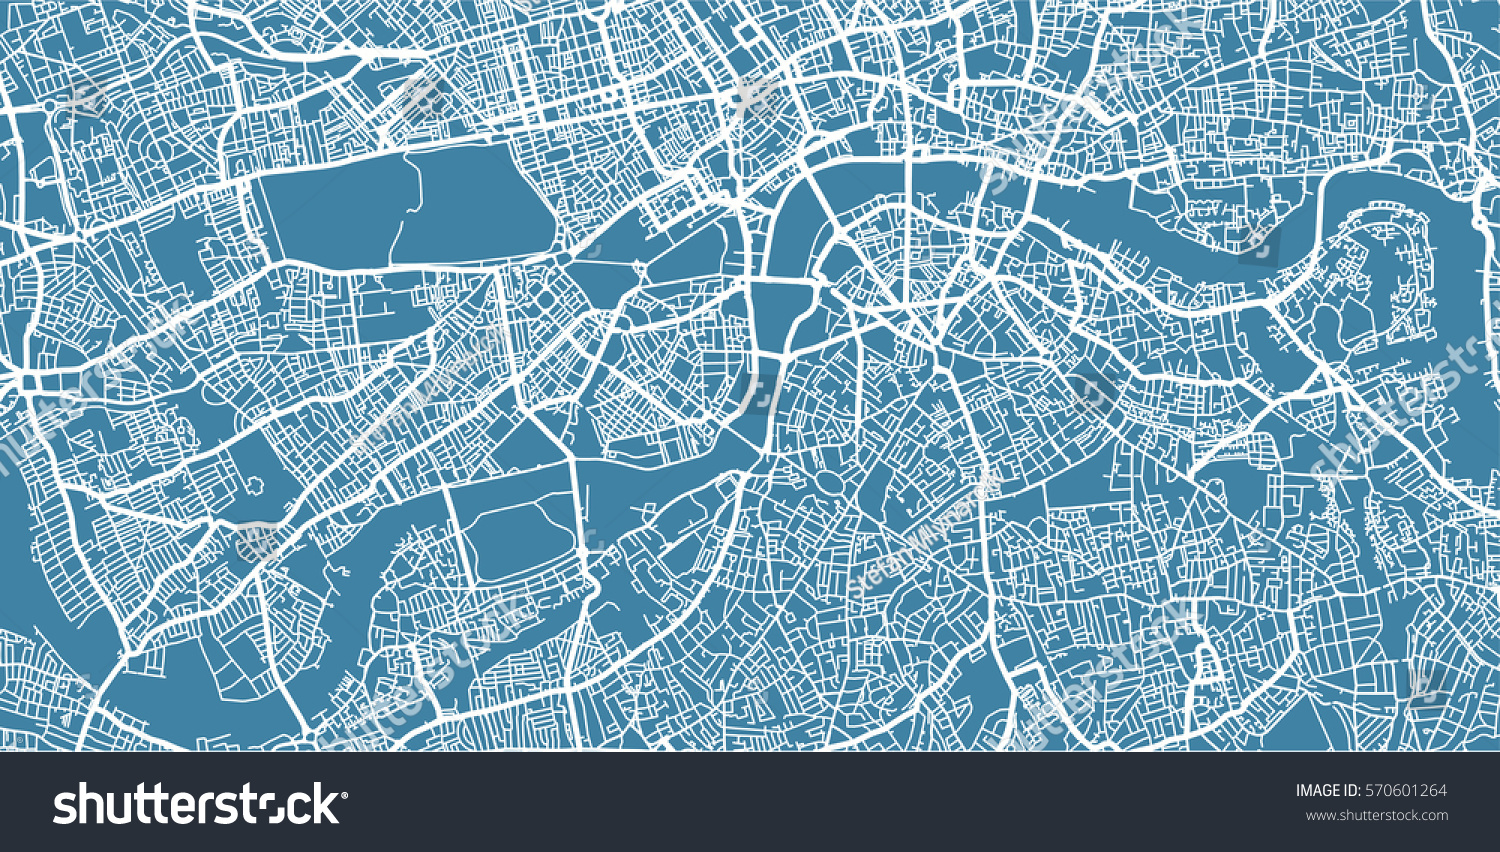 London Free Map.Vector Map Center London Uk Stock Vector Royalty Free 570601264